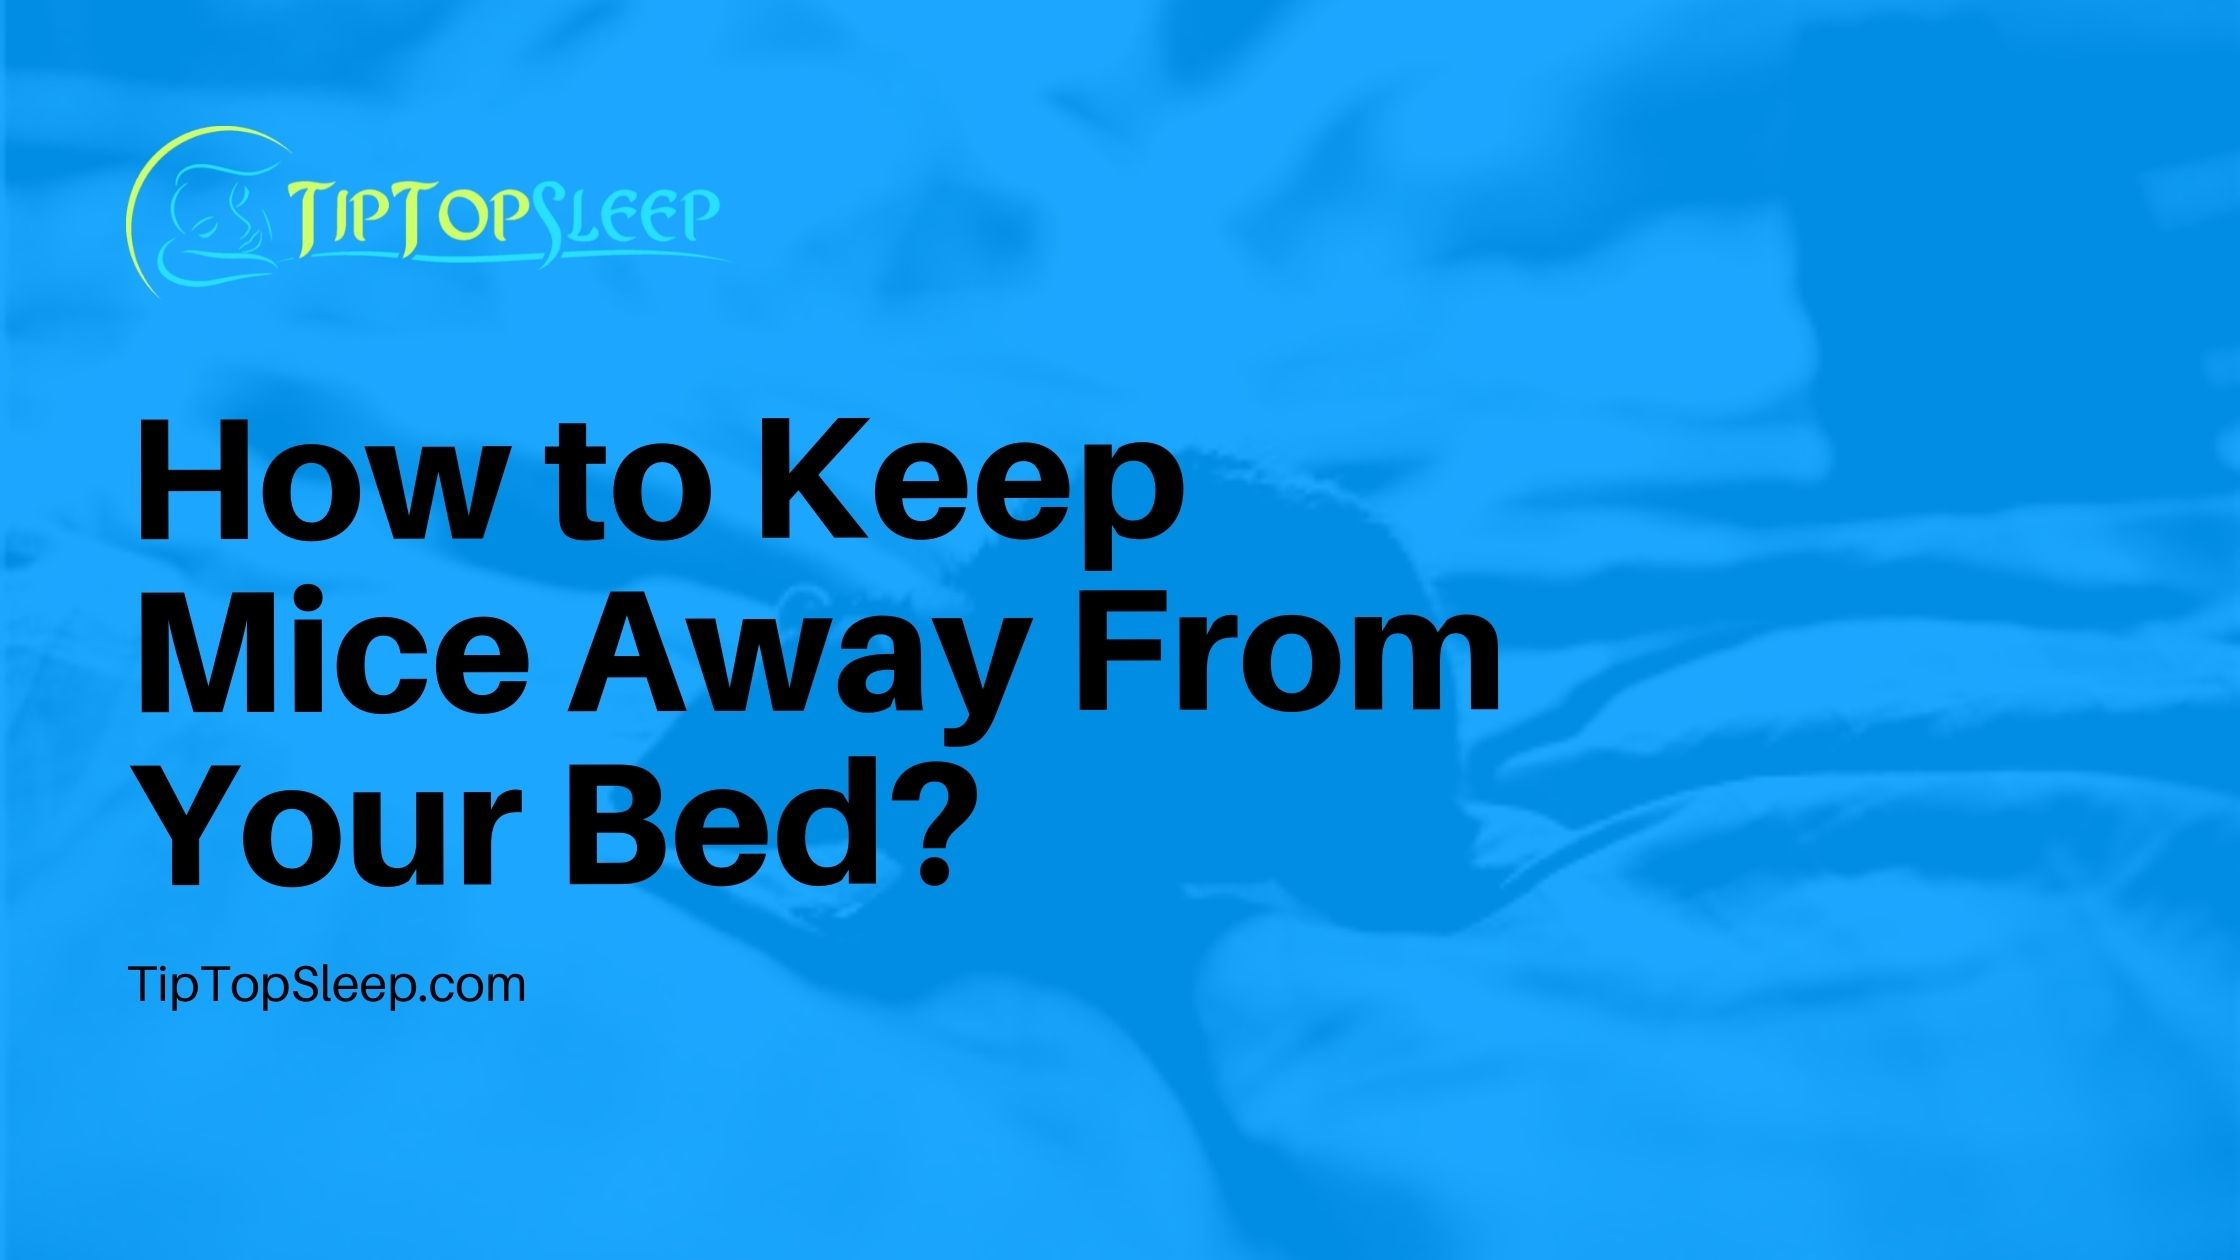 How-to-Keep-Mice-Away-From-Your-Bed